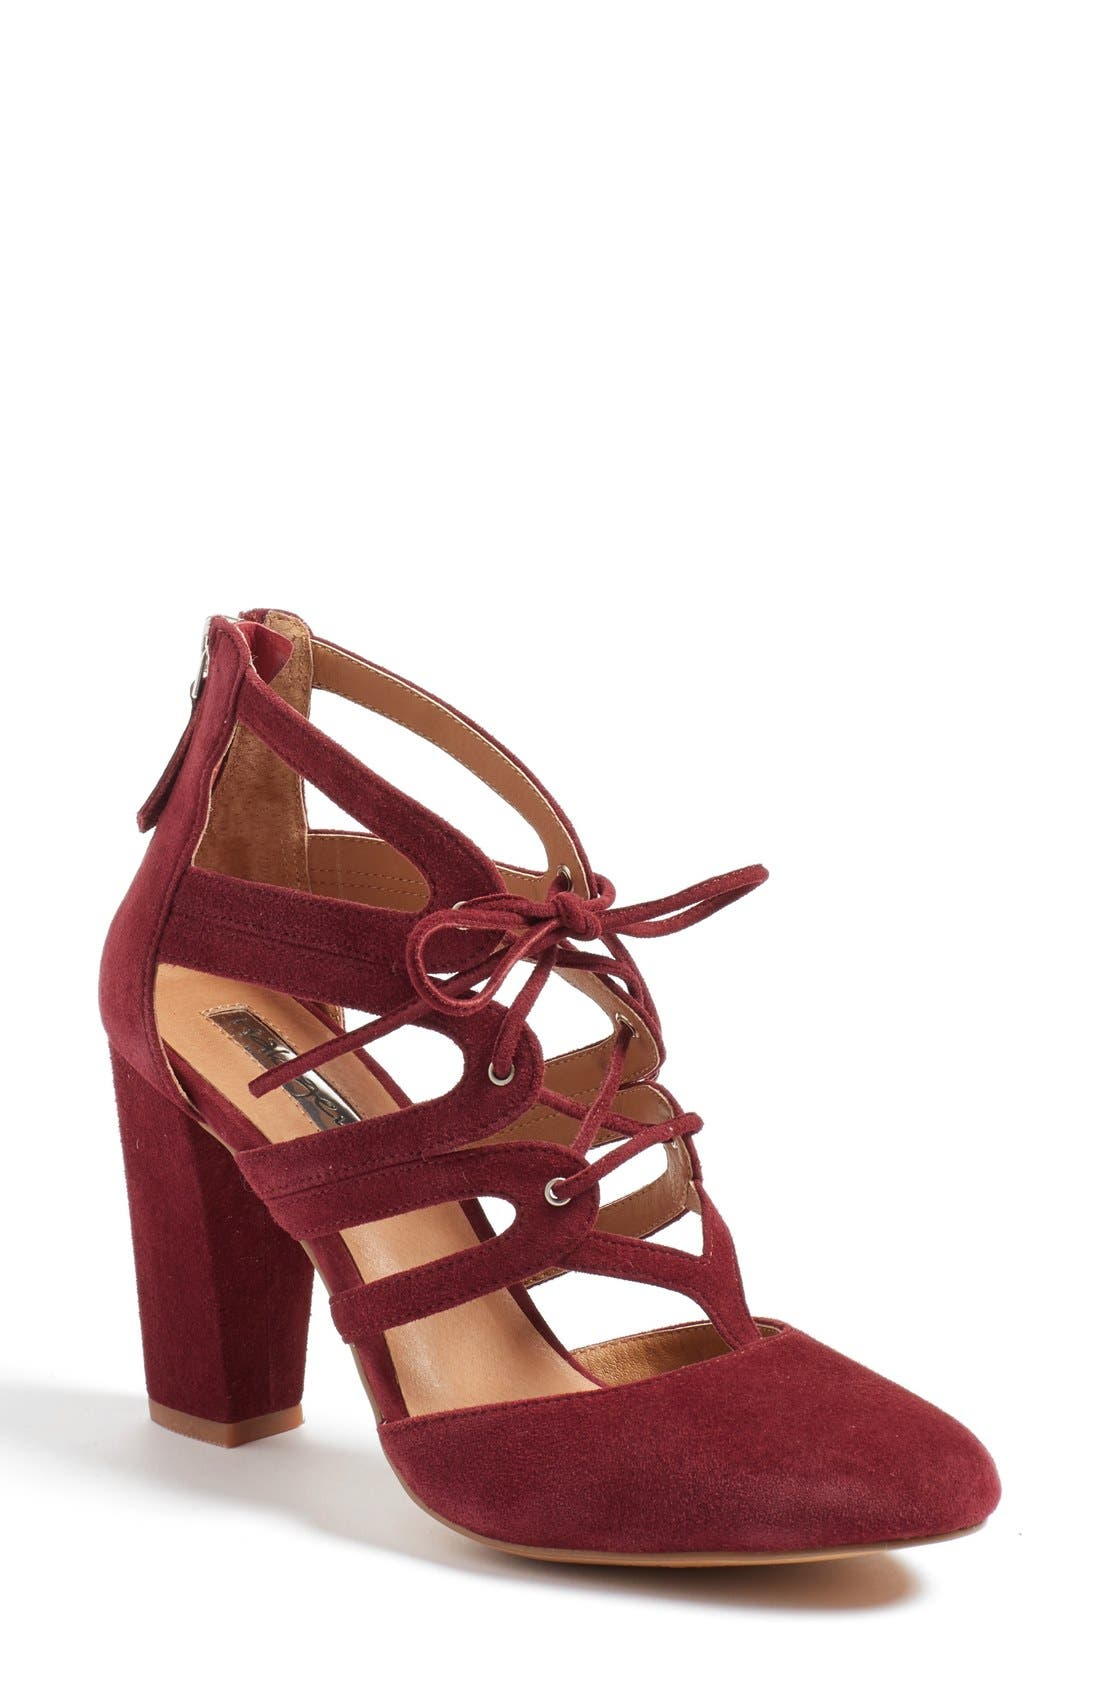 'Sydney' Block Heel Ghillie Pump,                         Main,                         color, Burgundy Suede